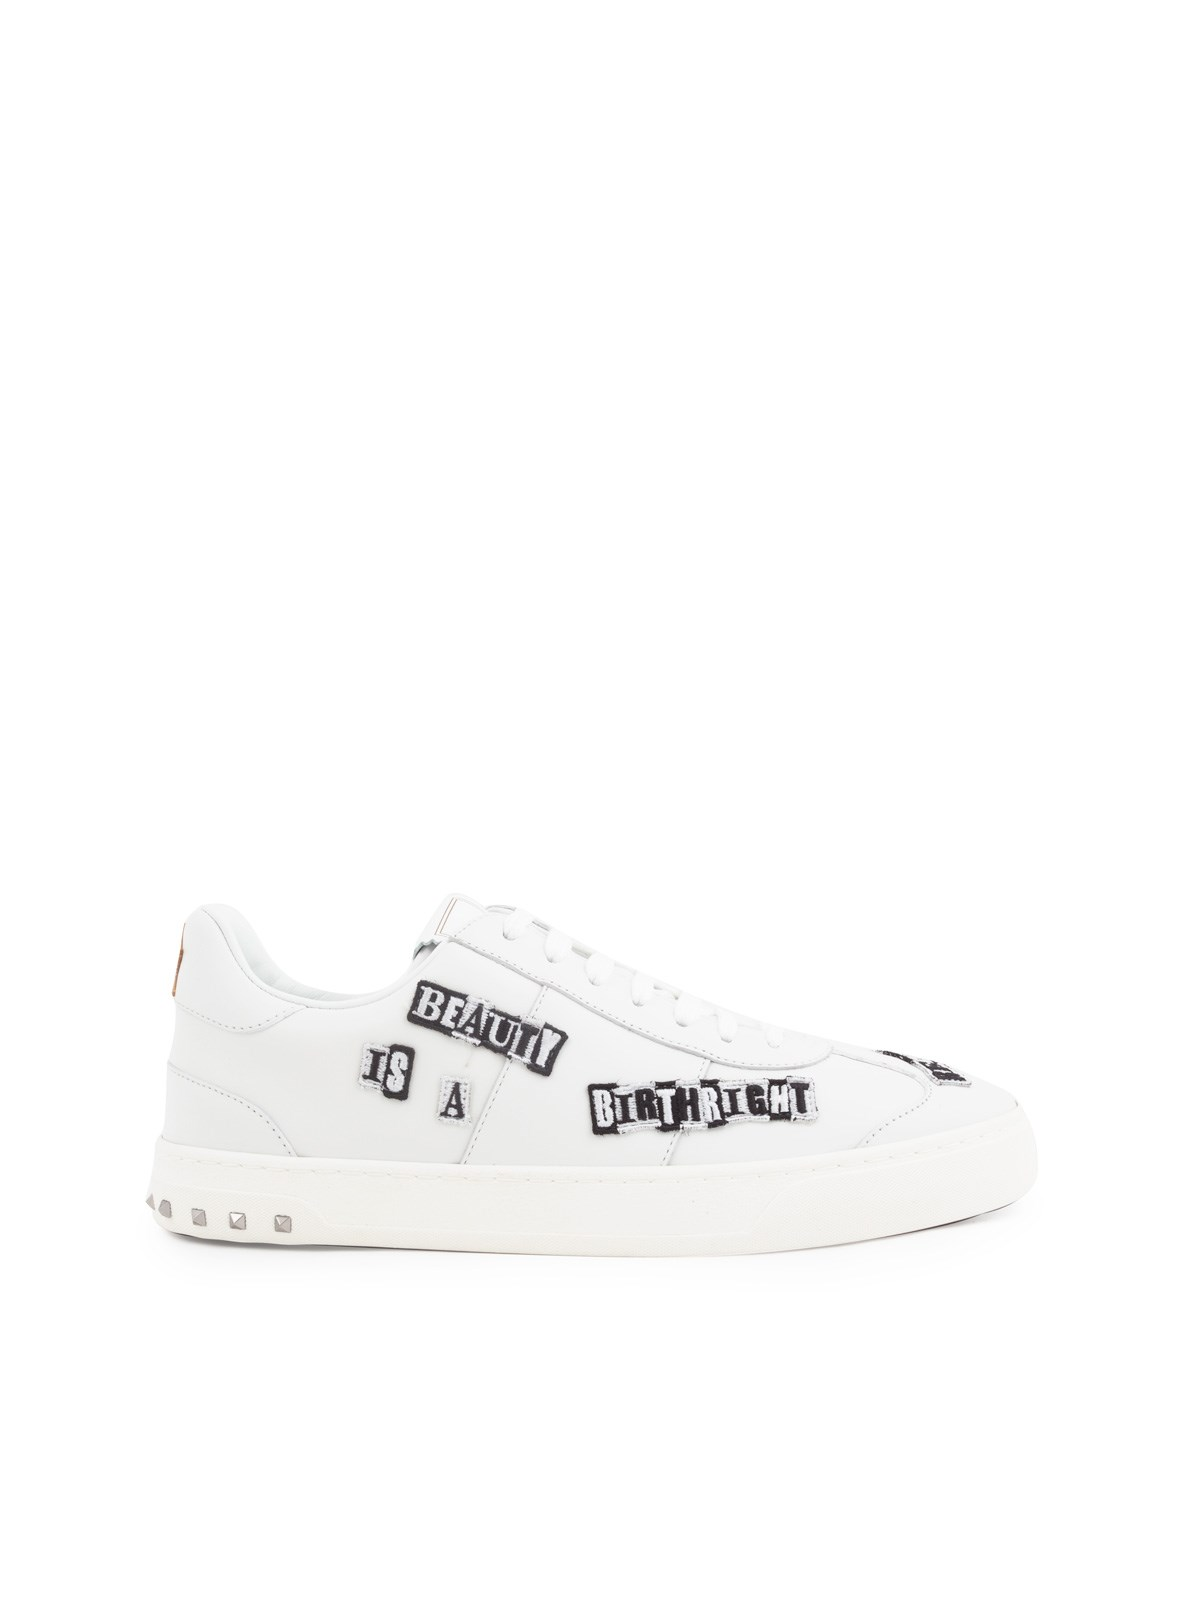 Valentino Garavani White Flycrew sneakers sale excellent WaJUJG